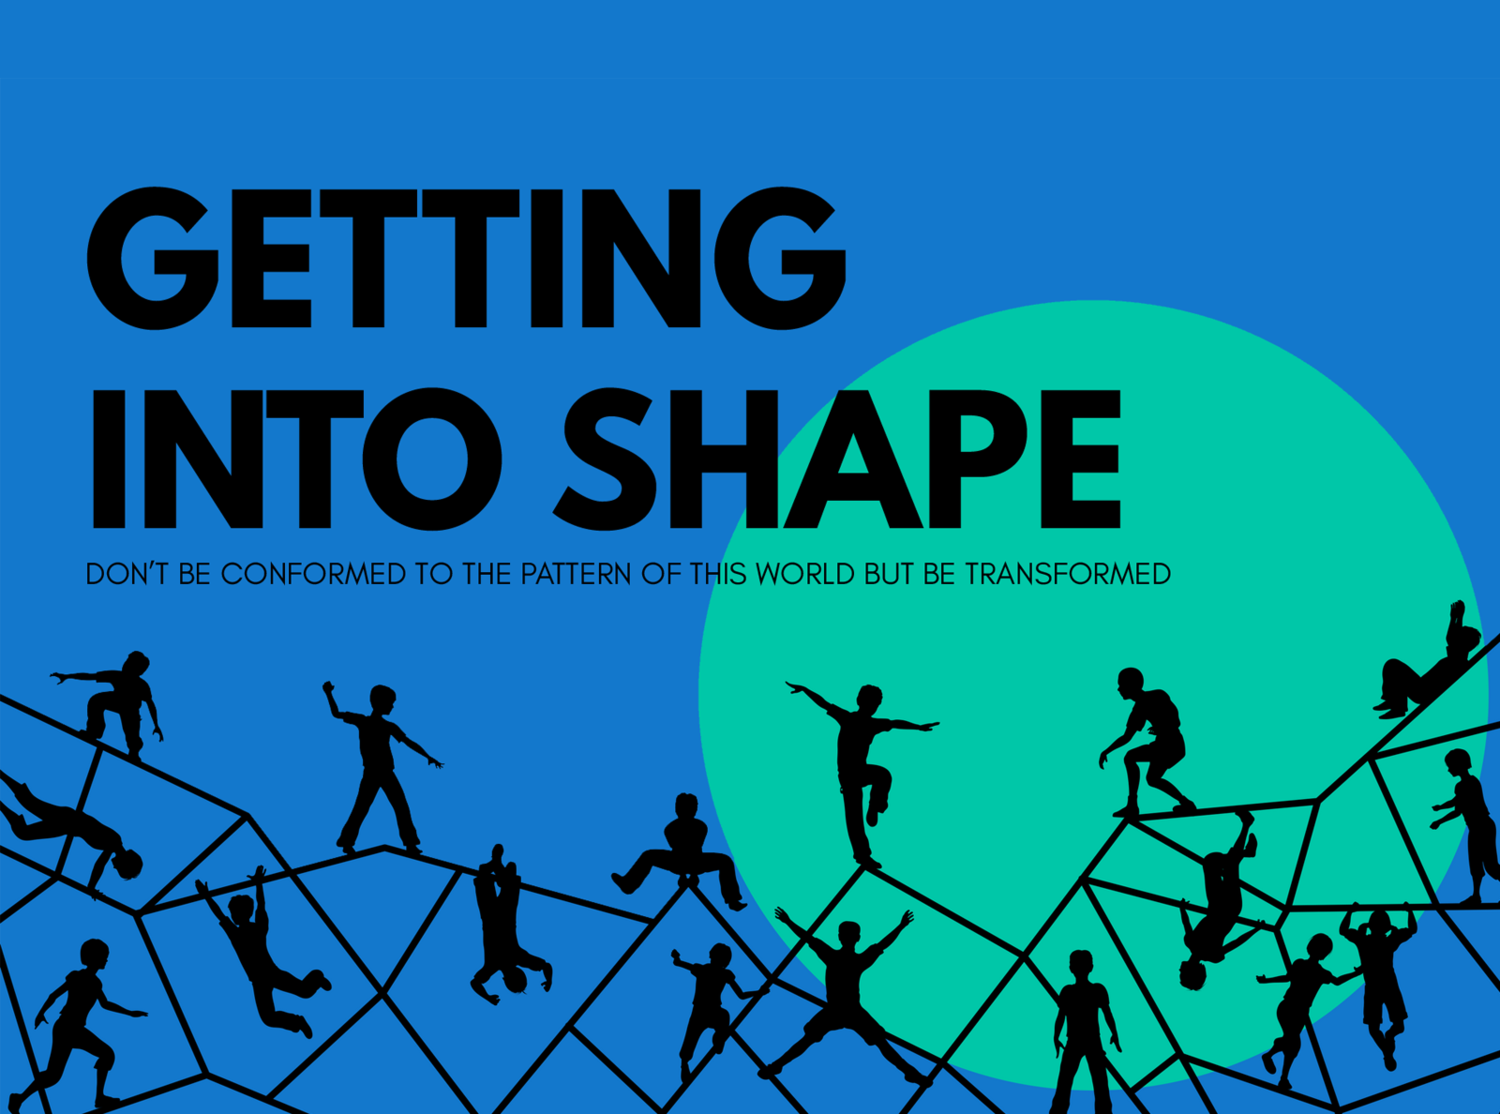 Getting into shape_series image.png